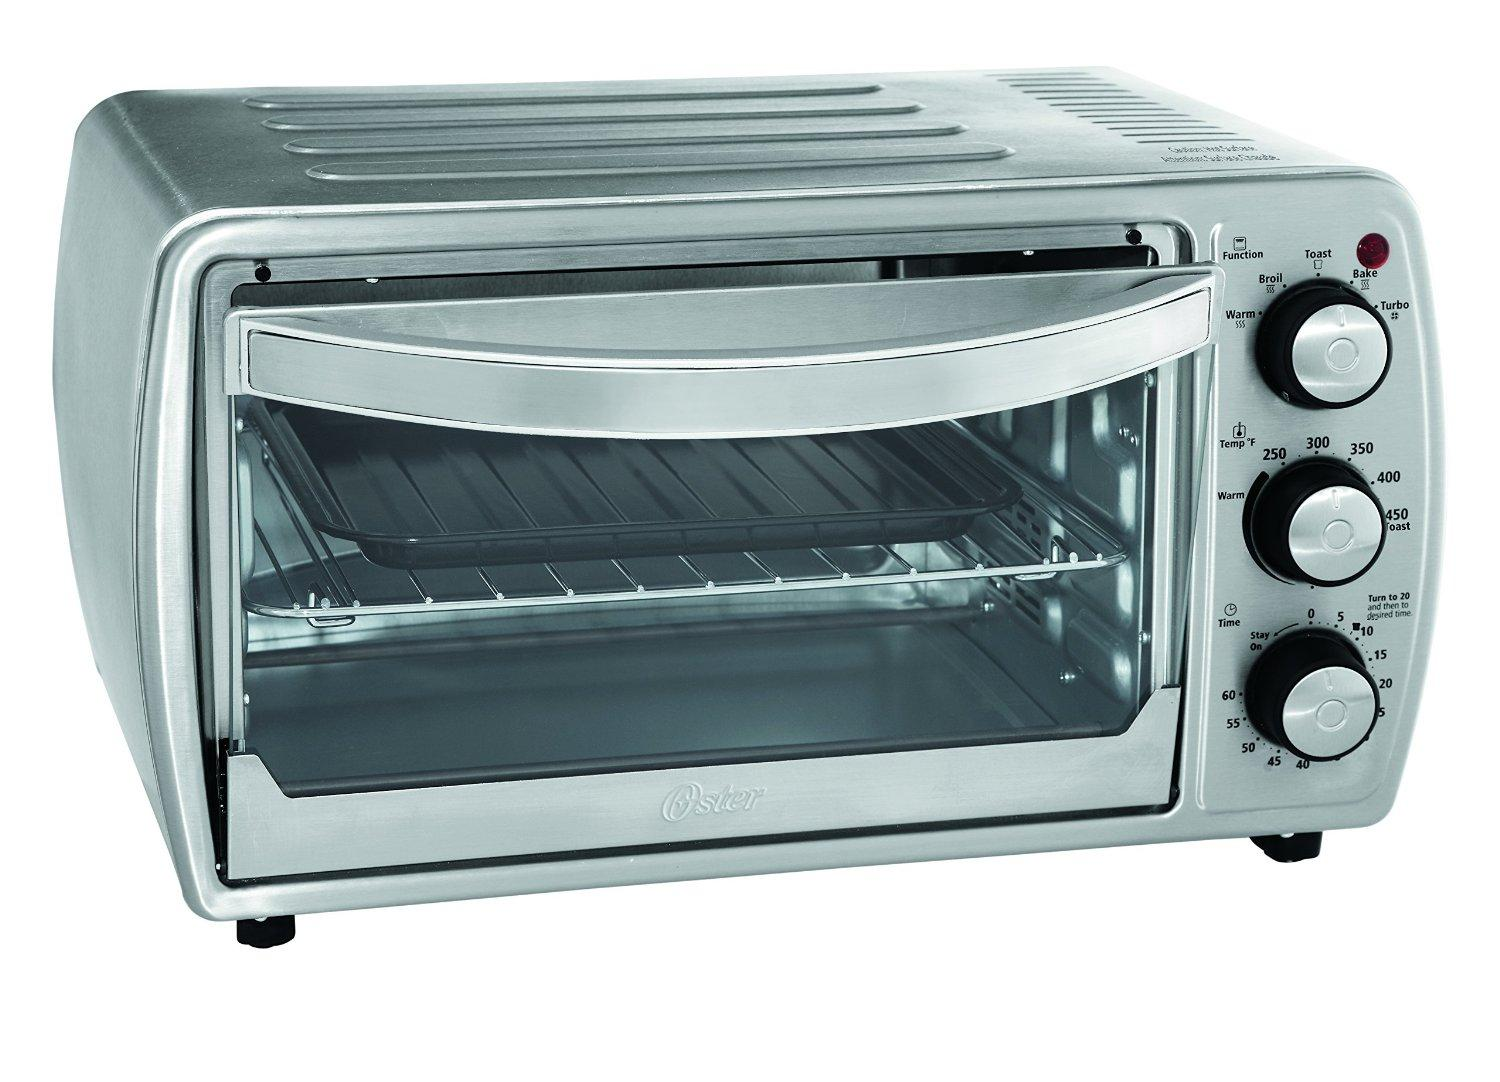 Oster TSSTTVCG02 Oster 6 Slice Convection Toaster Oven with Integrated ...